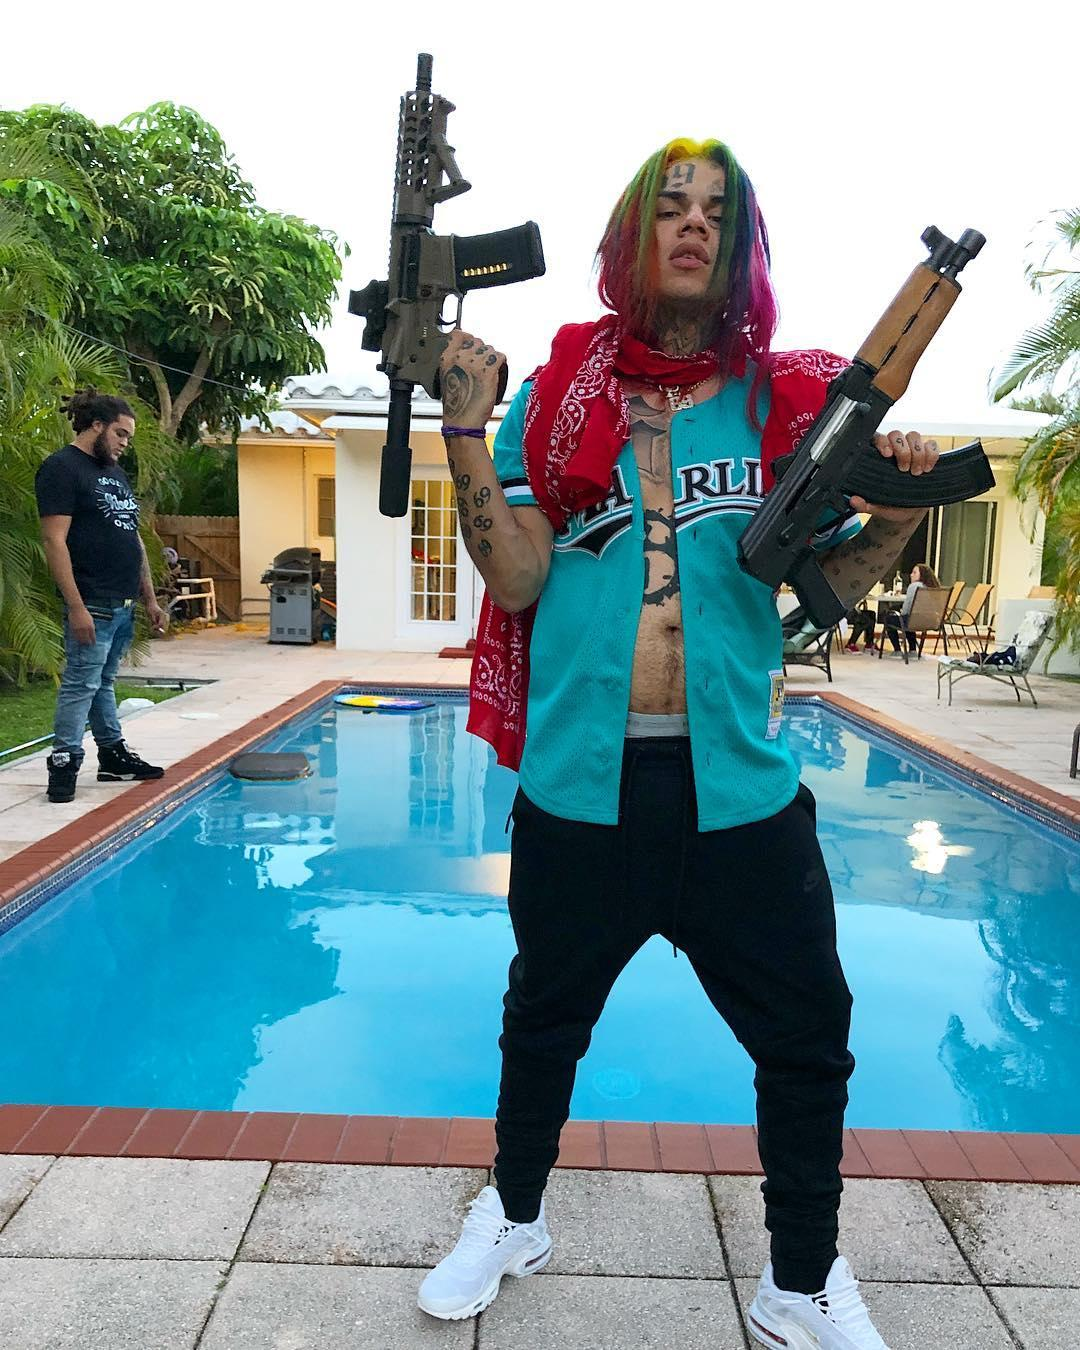 Tekashi 6ix9ine's Security Team Indicted For Robbery, Impersonating A Police Officer